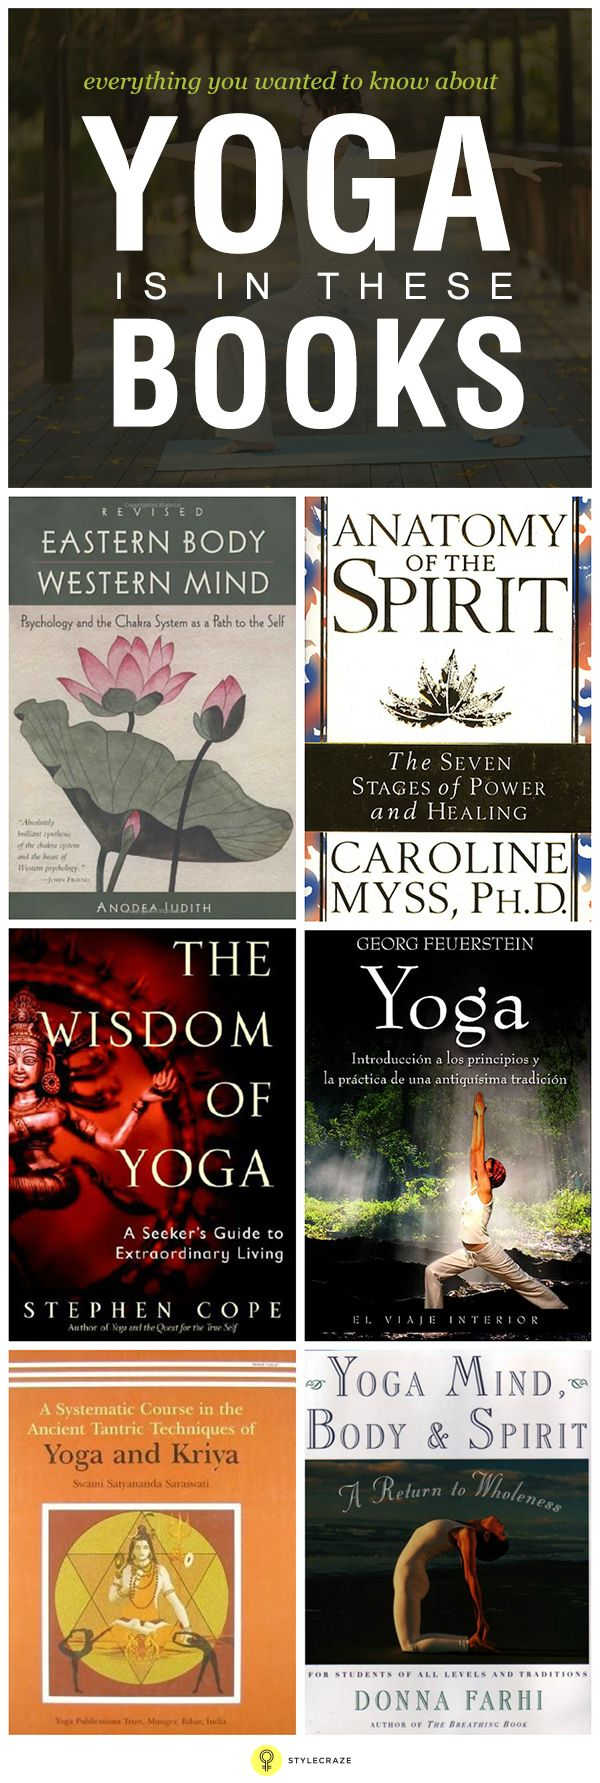 Are you looking forward to know the vast range of yoga techniques that can profoundly benefit you, there are certain yoga books you can ...